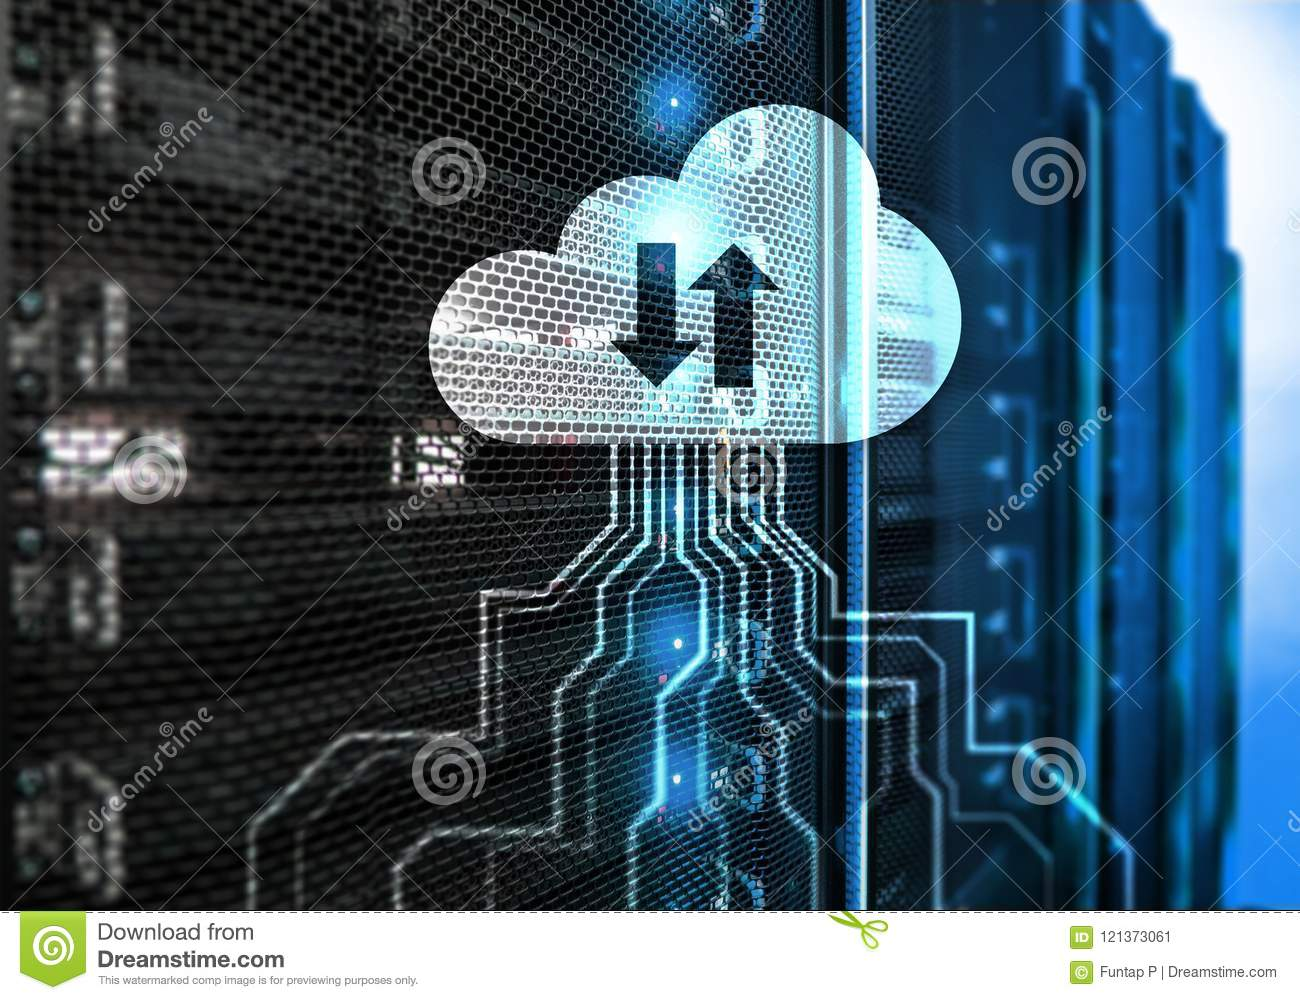 CLoud server and computing, data storage and processing. Internet and technology concept